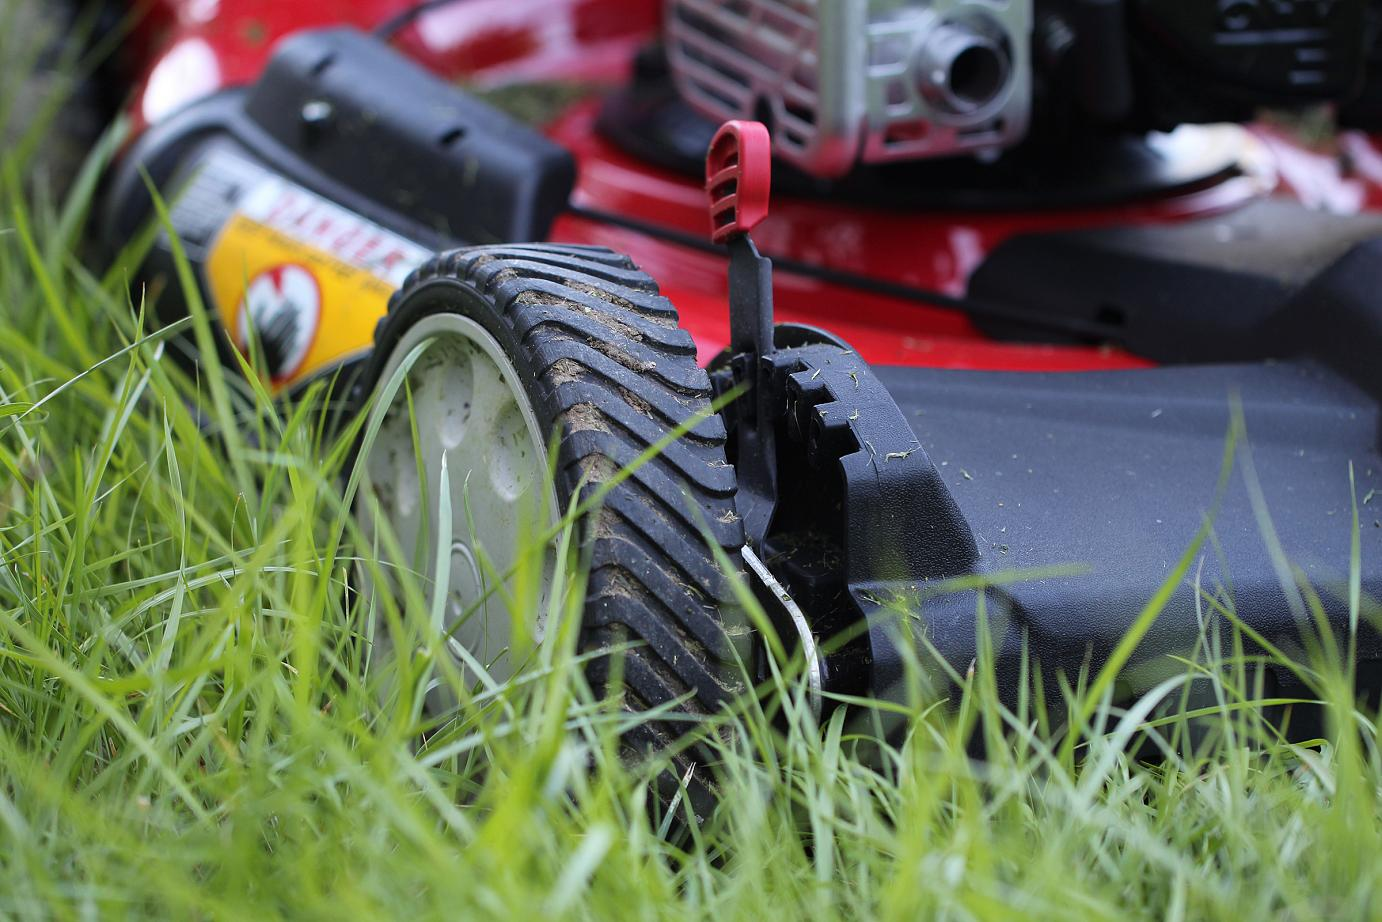 Artificial Grass - Do You Like To Mow The Lawn? Then You Better Think Twice Before You Do It